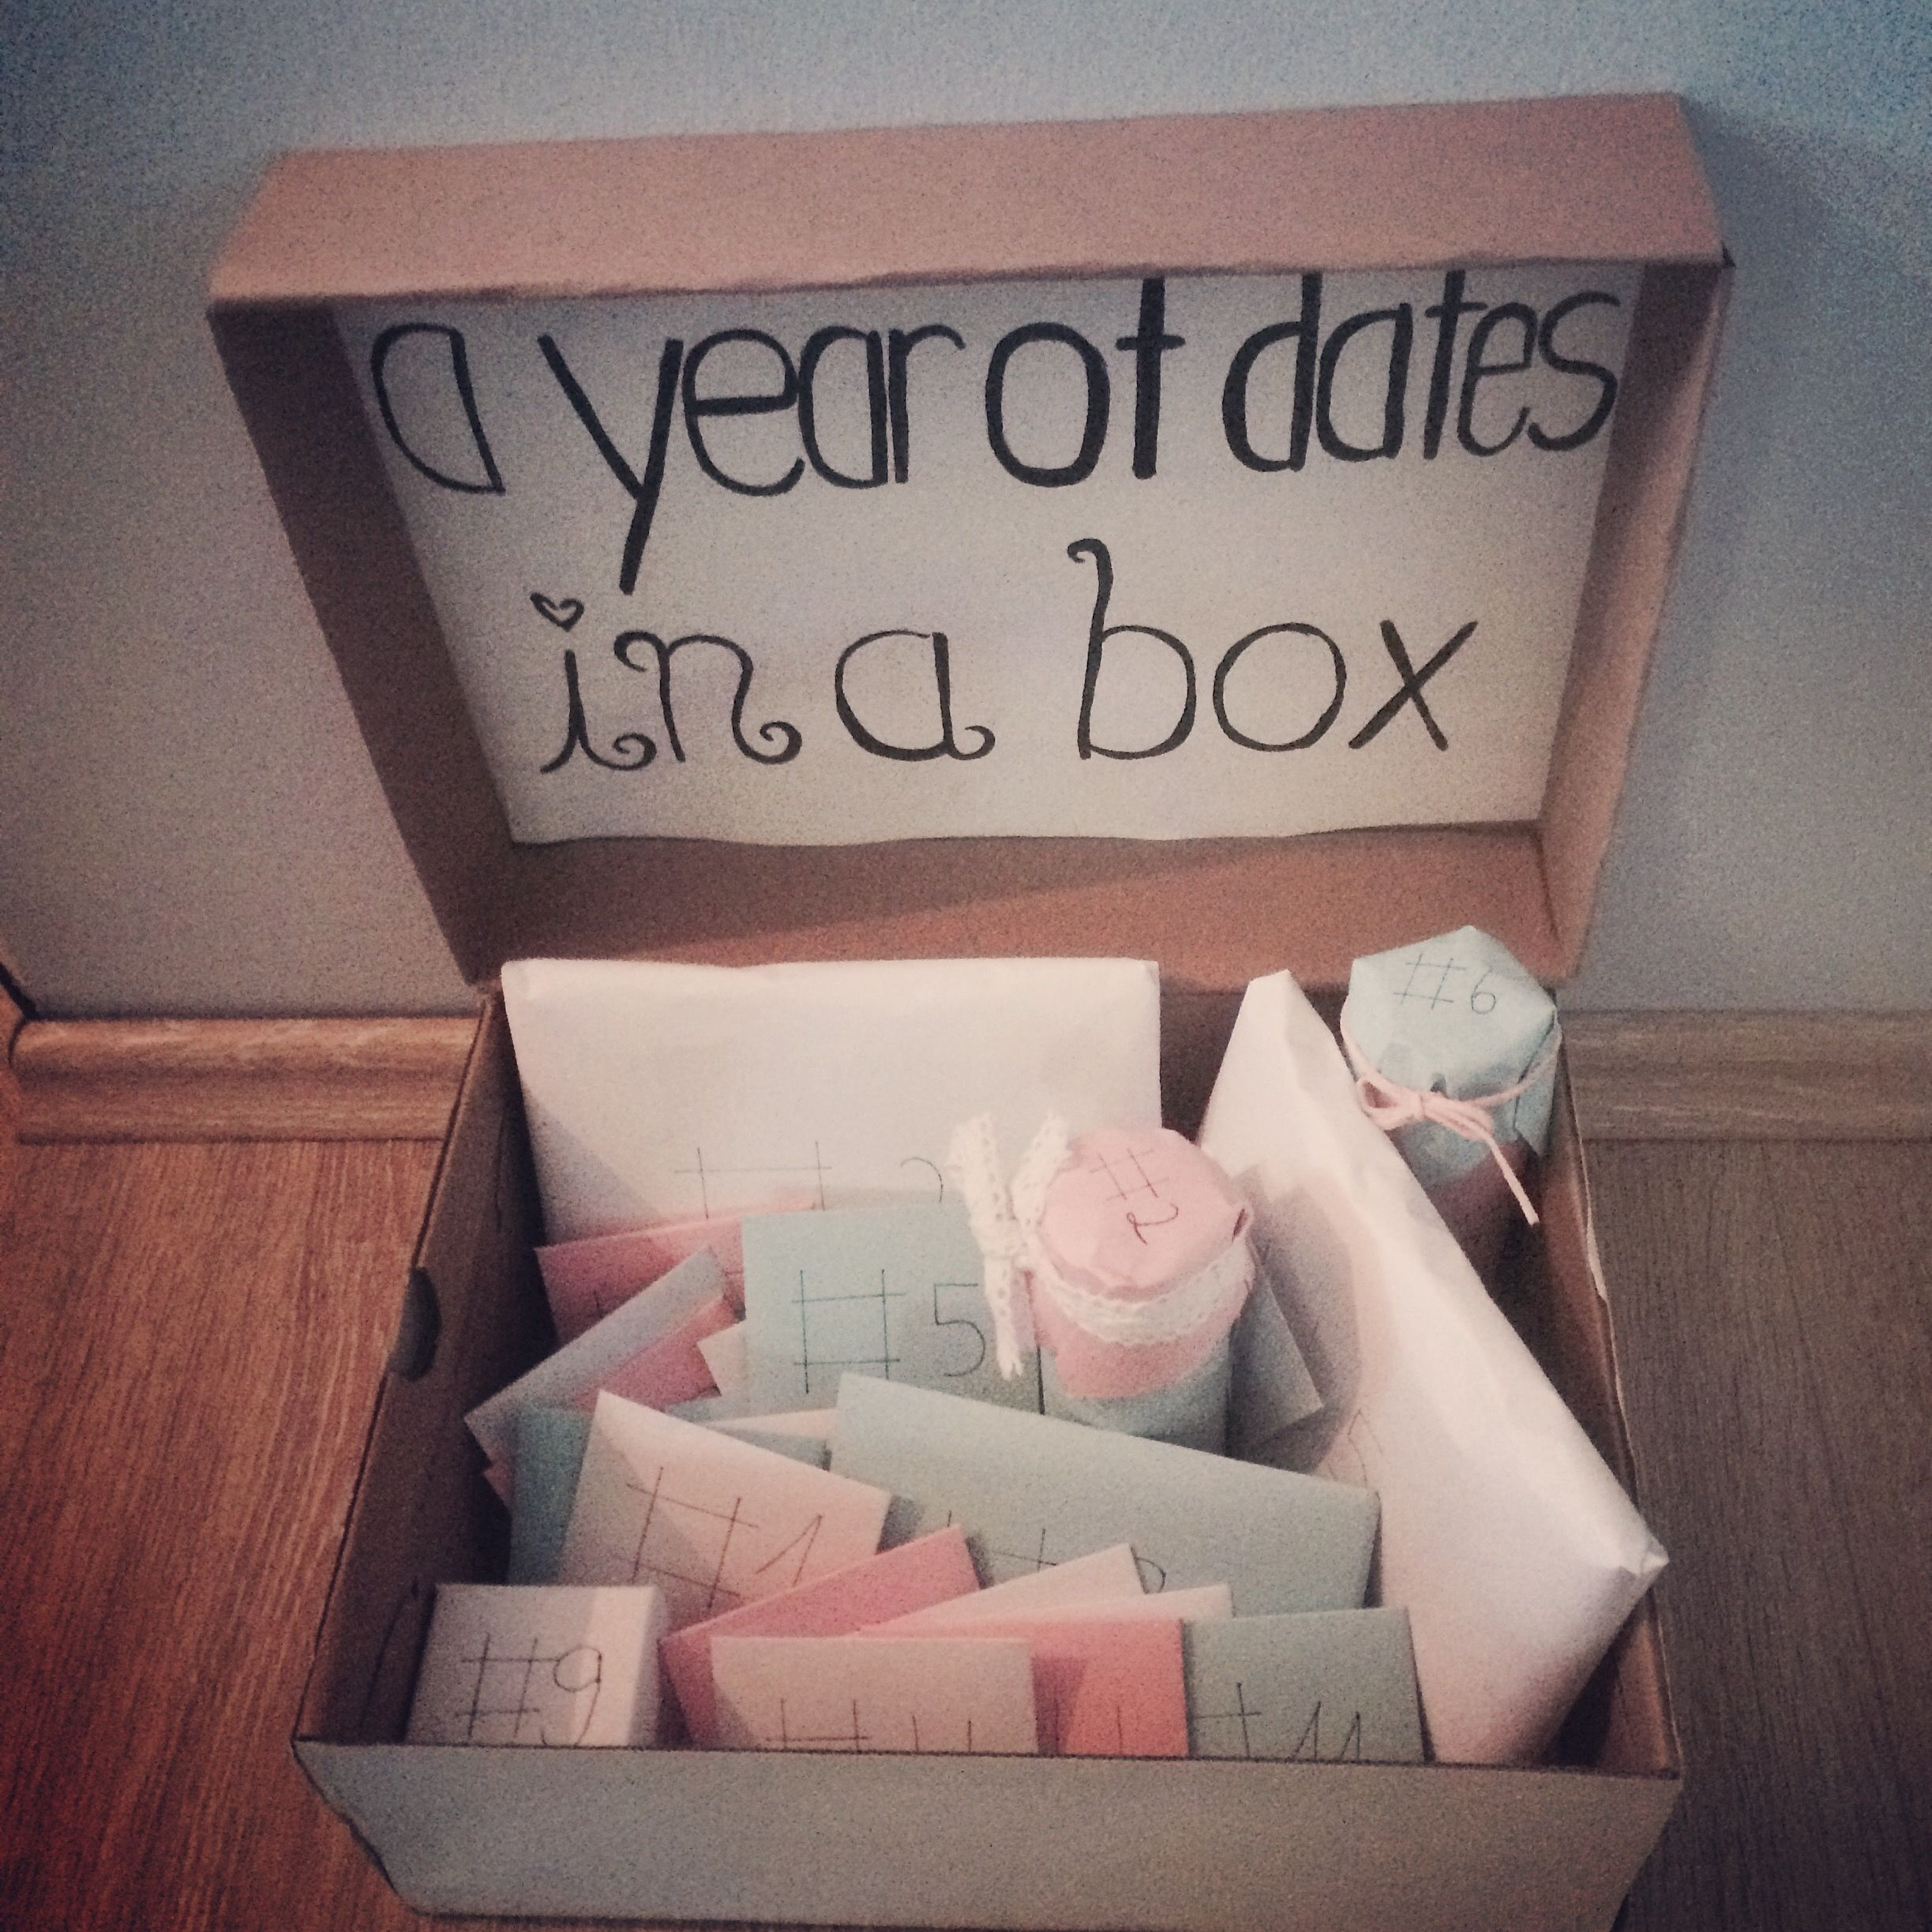 A year of Dates in a box | Dates in a box, Year of dates